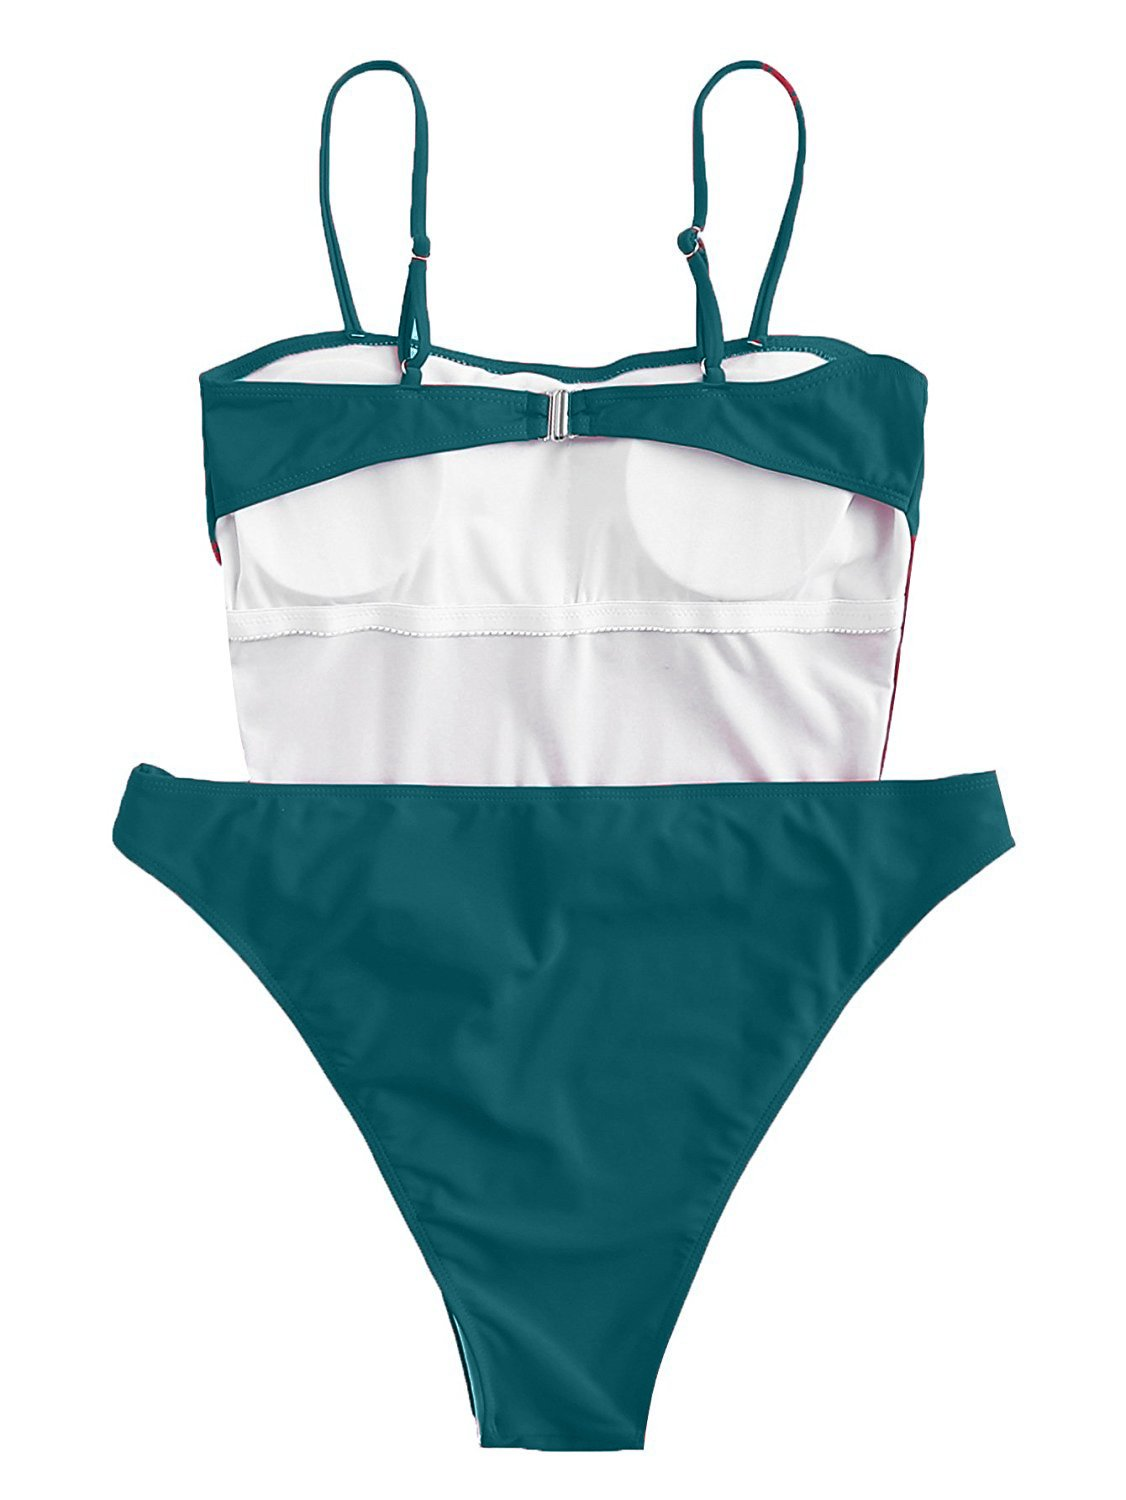 ioiom Women Sexy Spaghetti Strap Self Tie Front High Waist Cut One Piece Swimsuit Green M by ioiom (Image #7)